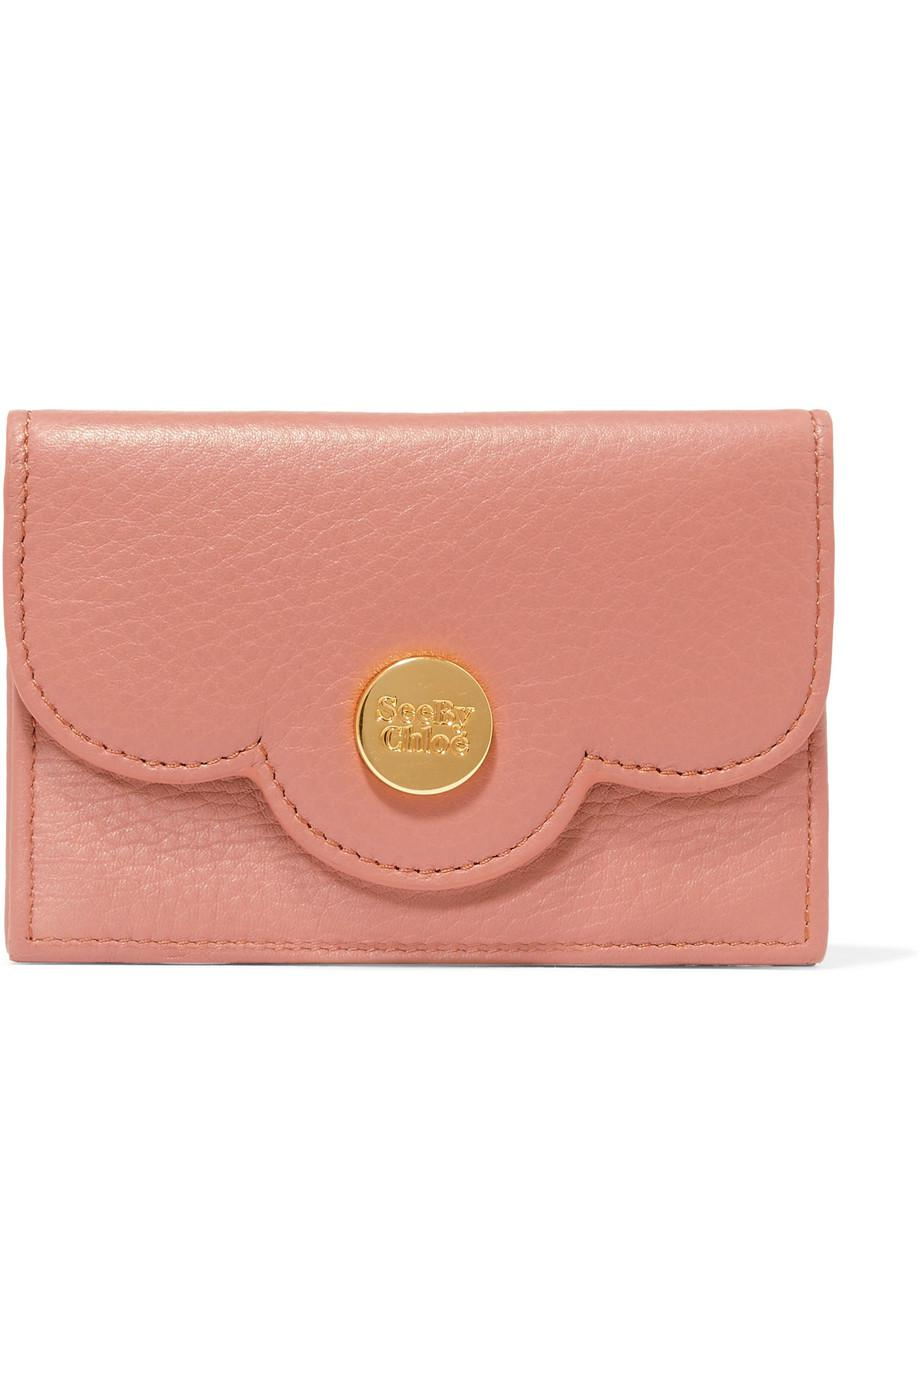 Discounts Cheap Online Leather Statement Clutch - COLOR MONEY by VIDA VIDA Free Shipping Low Price Fee Shipping Sale Original nQZf12uDh